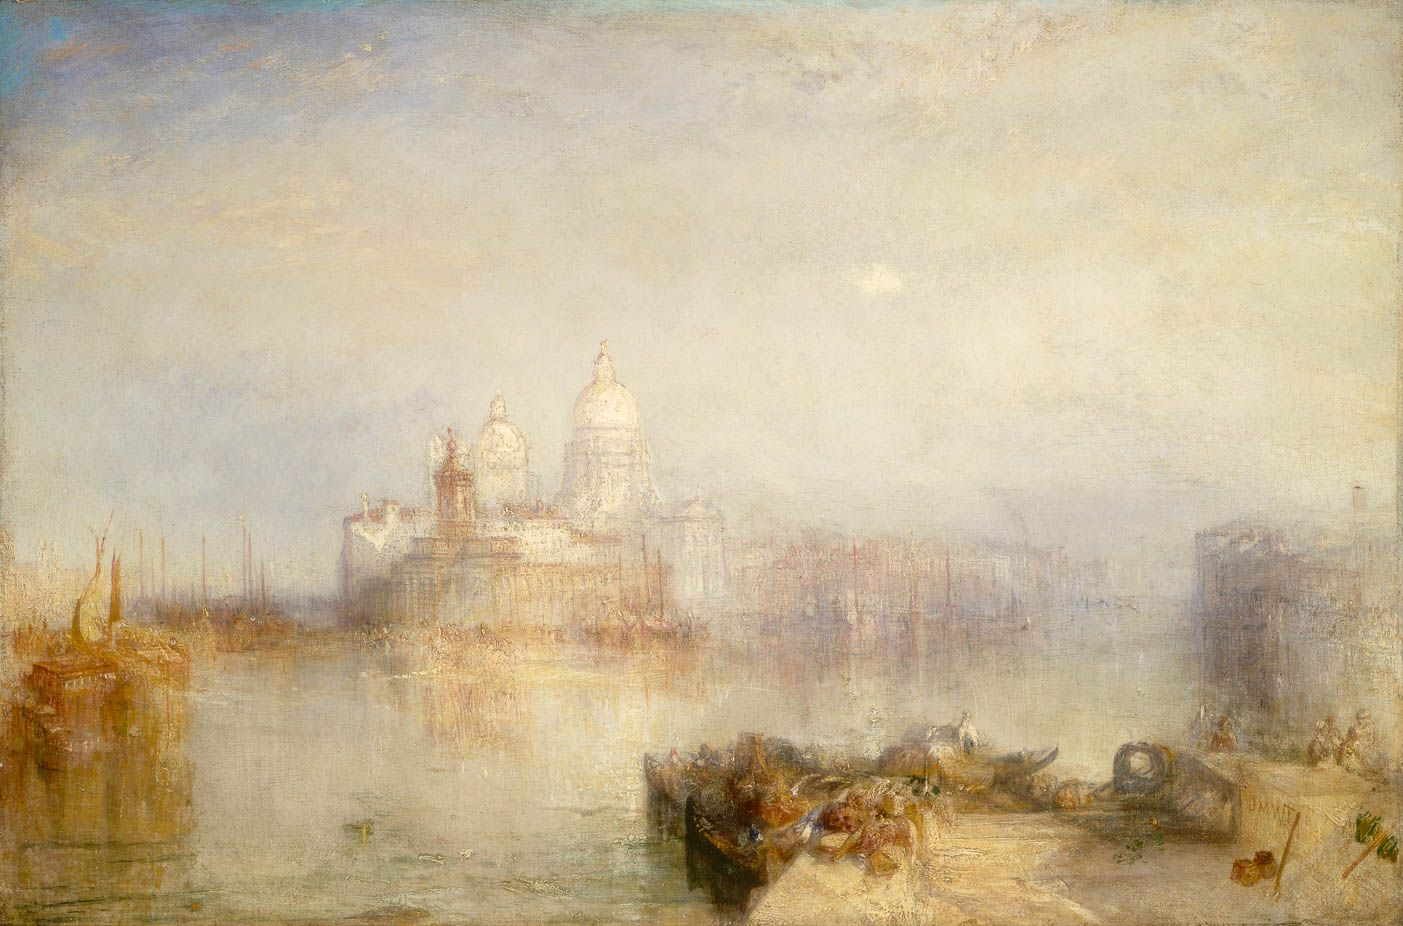 Venice Seen By Fusina Joseph Mallord William Turner As Art